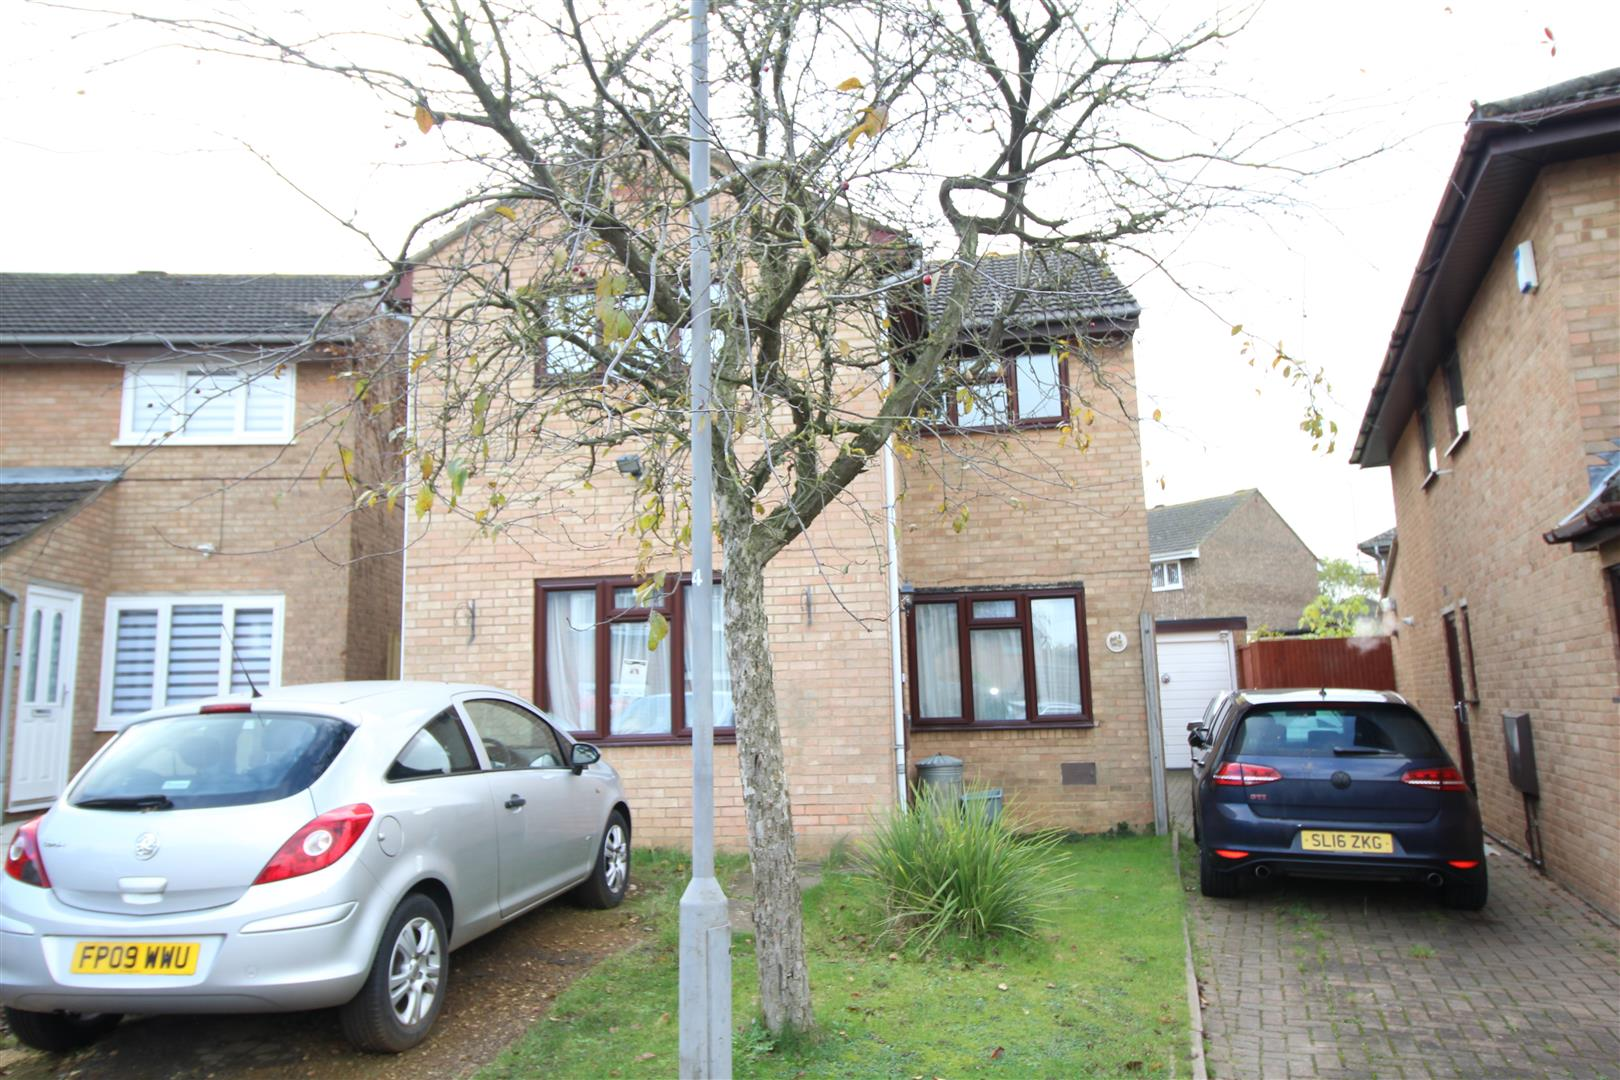 4-5 BEDROOM DETACHED HOUSE. This spacious detached house is in need of a little TLC but is offered at a  competitive price to take this into account. The property offers versatile accommodation with a ground floor bedroom 5 or a second reception room. Th